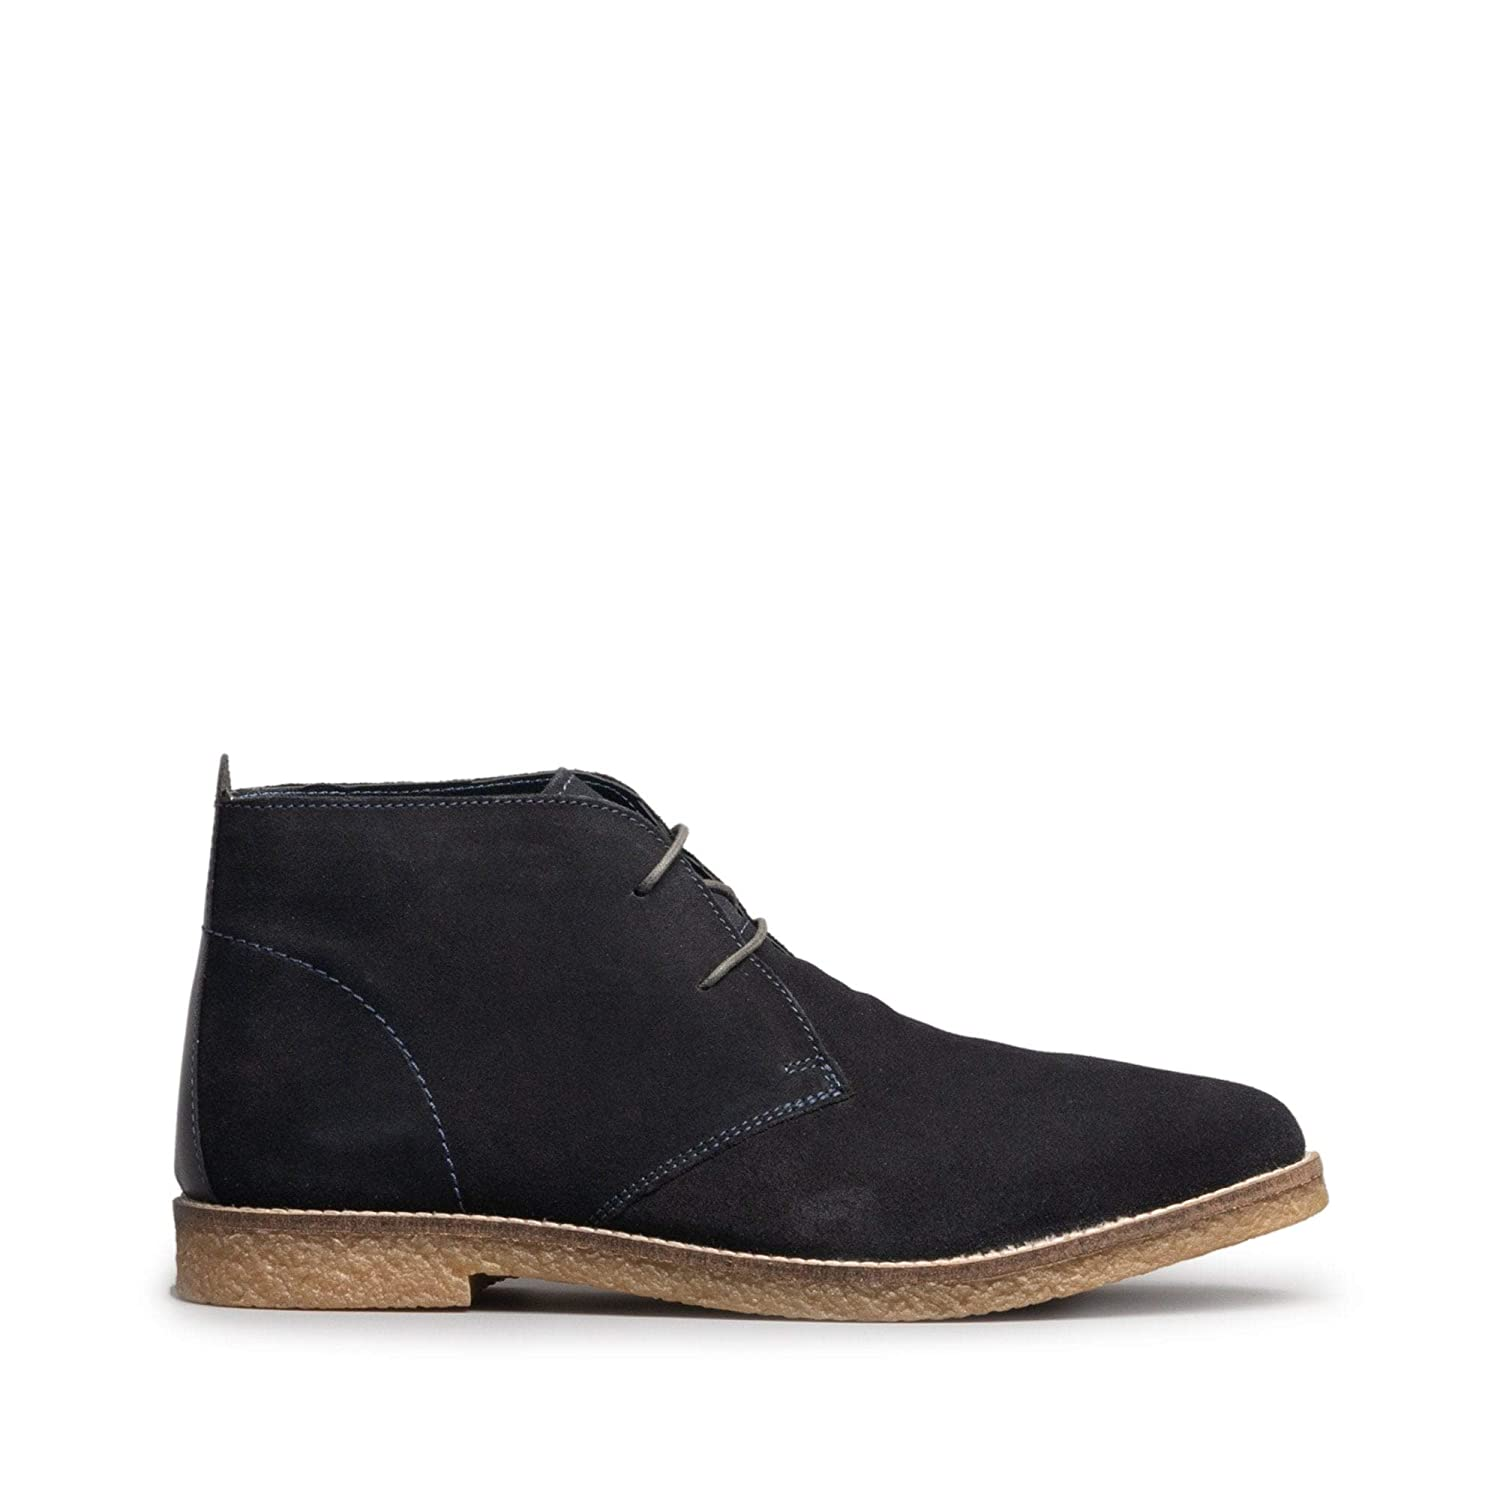 03c49aec80f Silver Street London Barnaby Mens Suede Chukka Boots Navy  Amazon.co.uk   Shoes   Bags